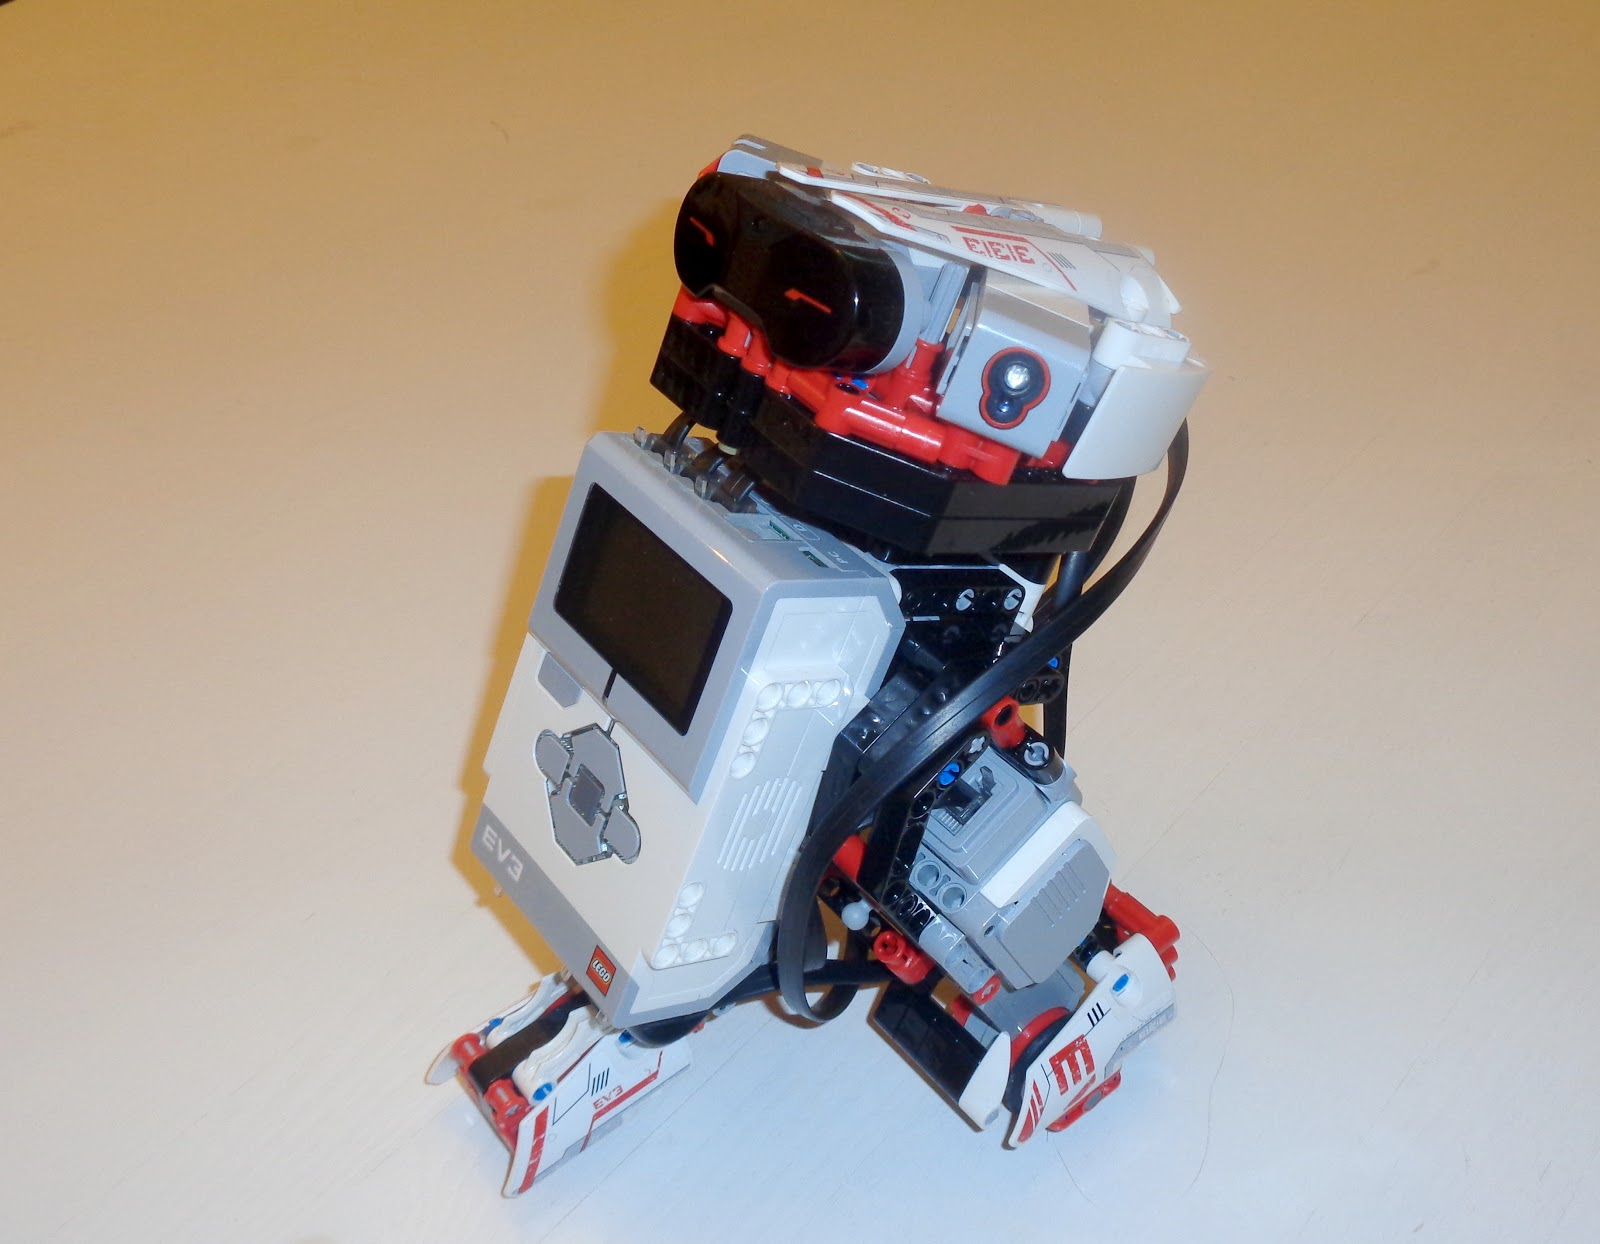 Build a Serverless Remote-Controlled Lego Robot with Twilio